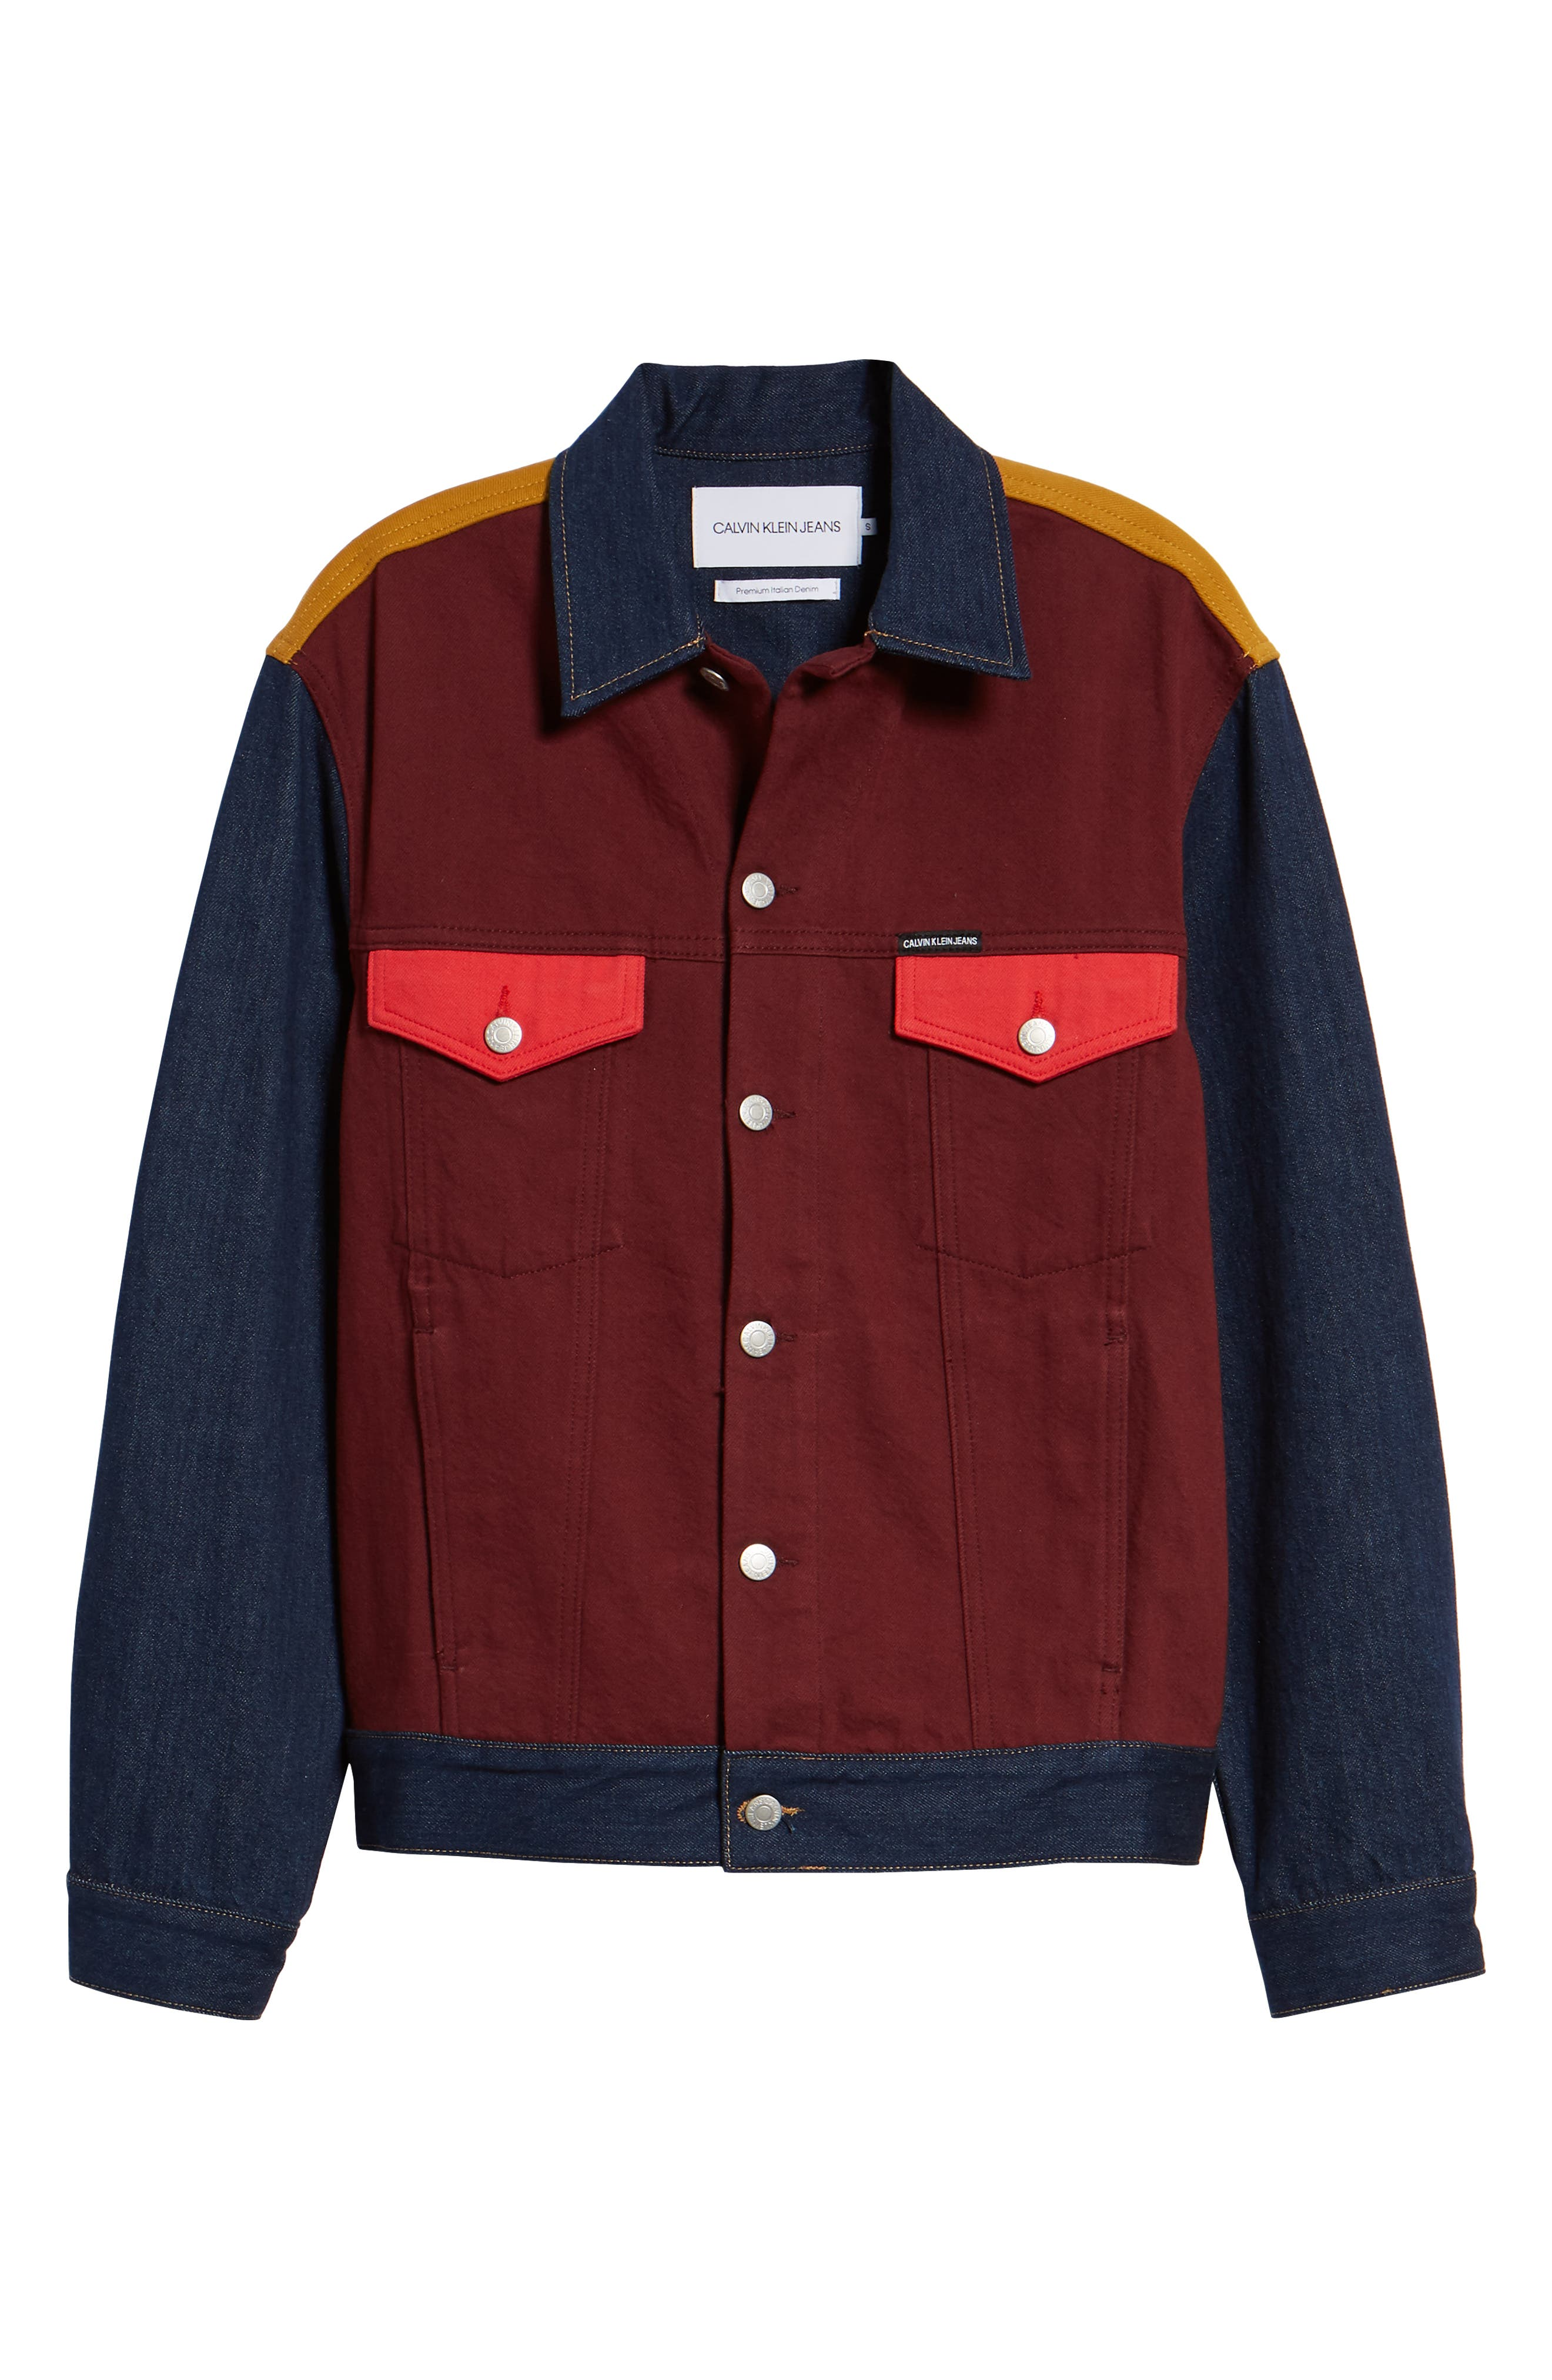 Colorblock Trucker Jacket,                             Alternate thumbnail 6, color,                             UKELELY PATCH